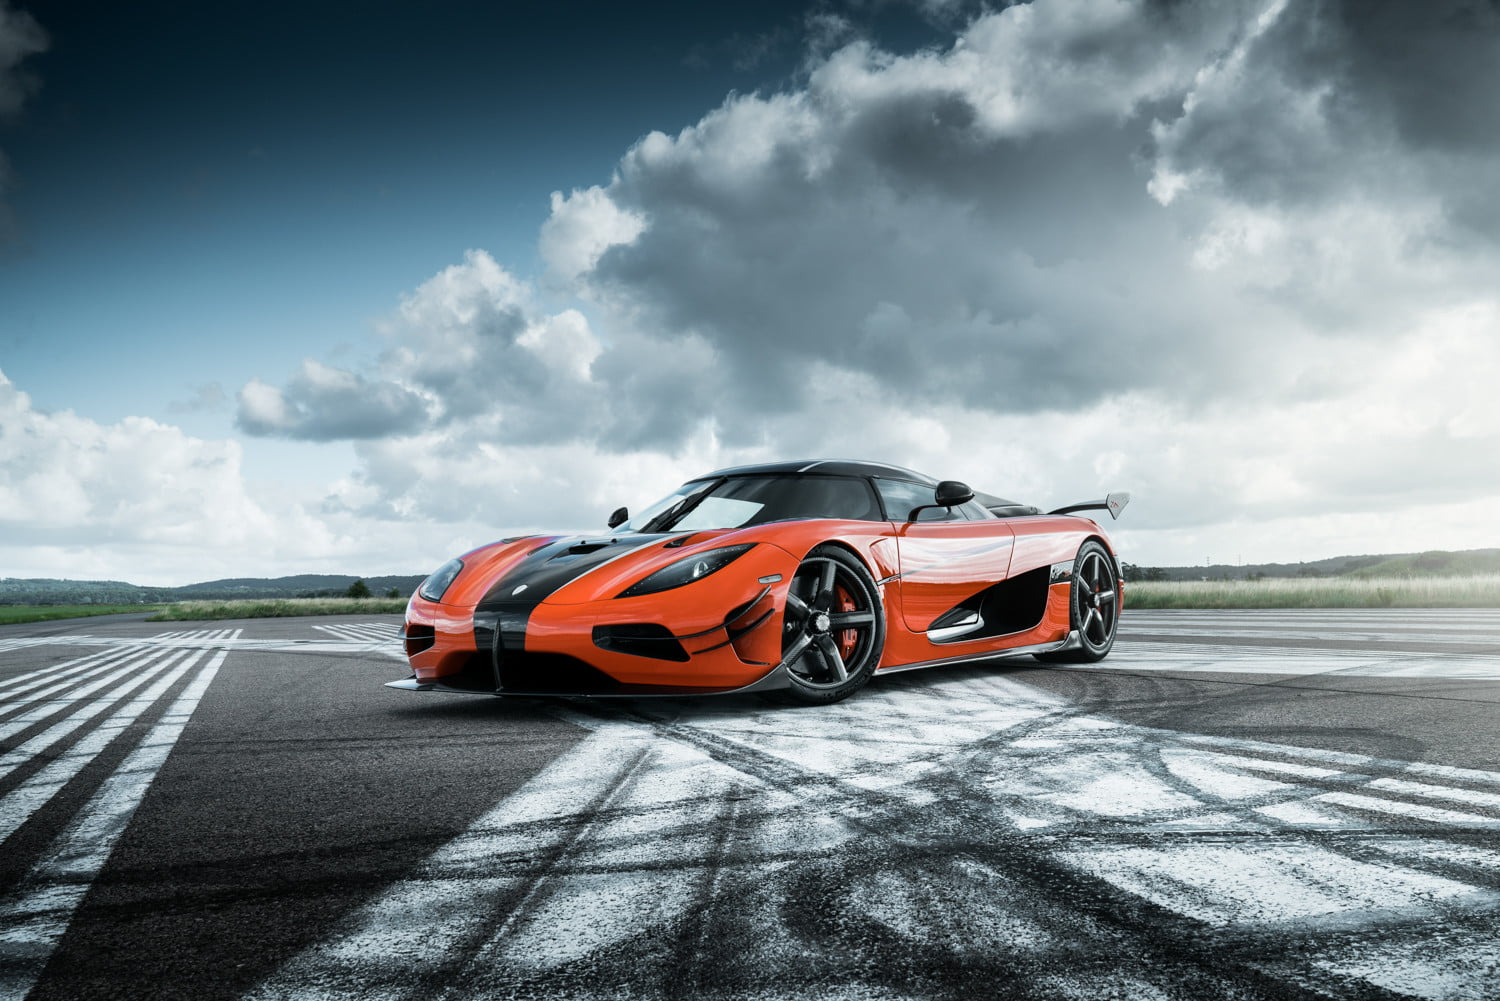 Sd King Koenigsegg Agera Rs Goes From 0 To 249 Mph And Back In Record Time